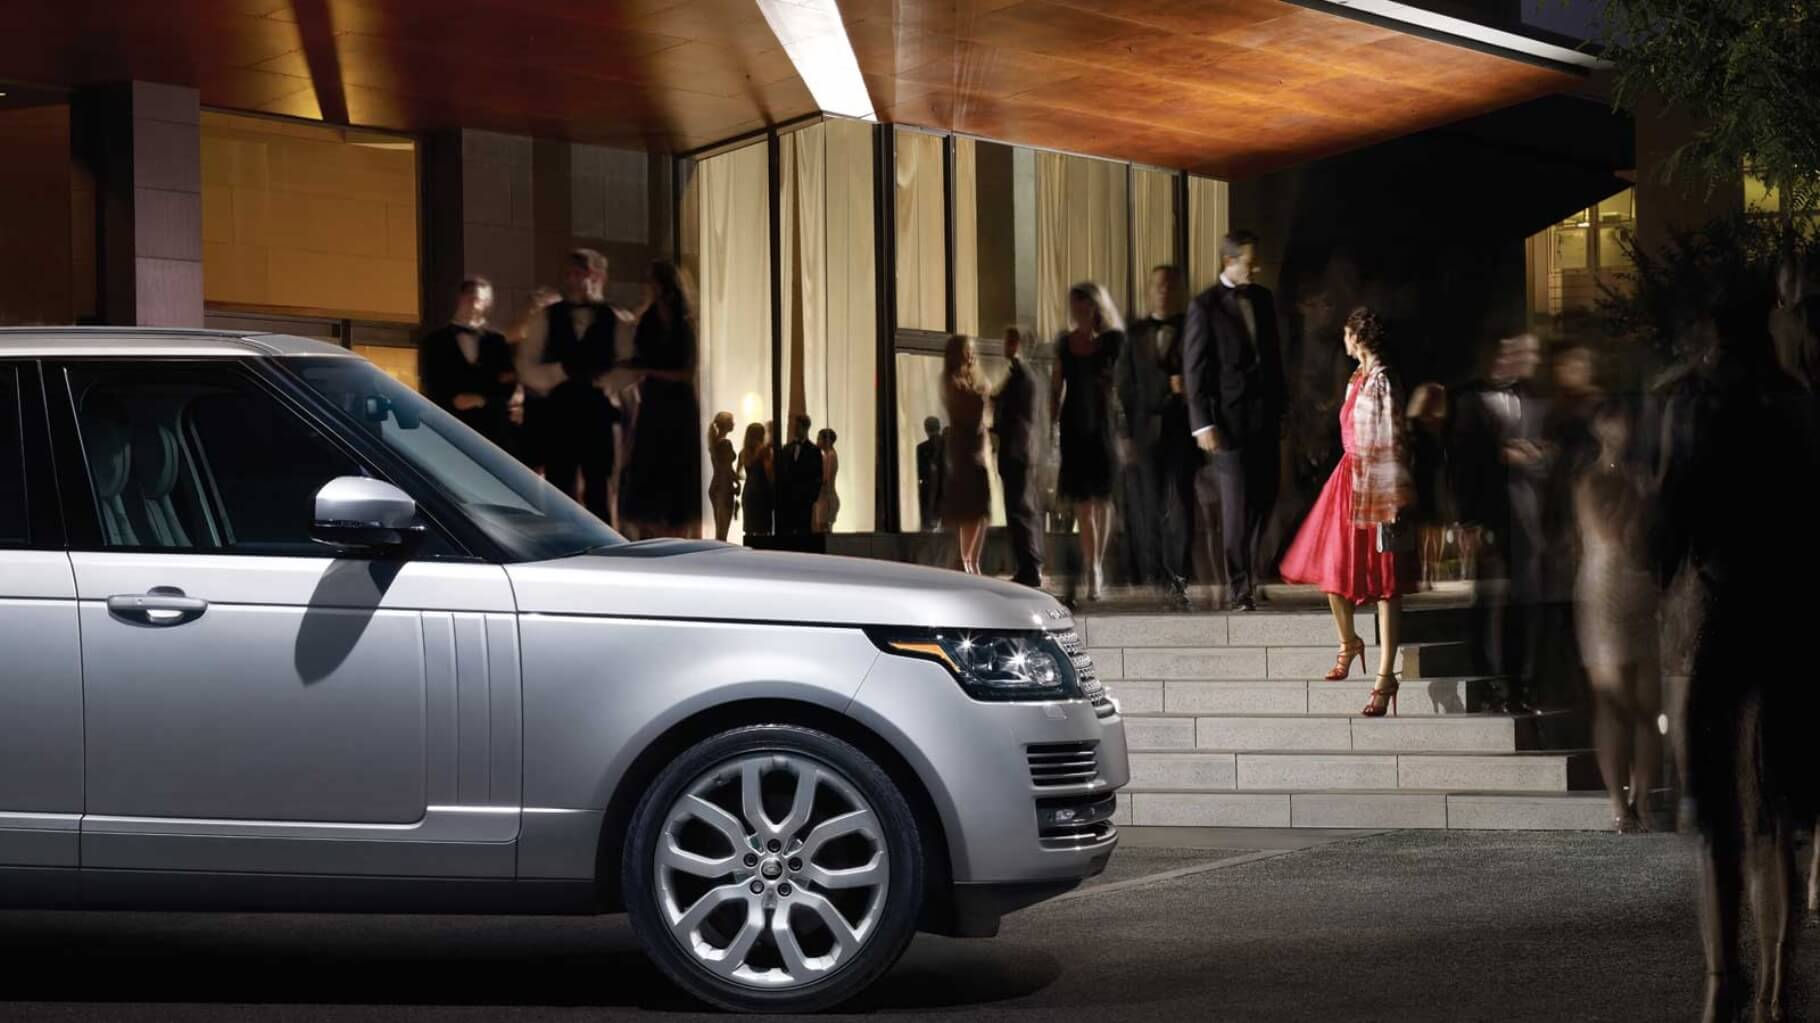 2016 Range Rover party